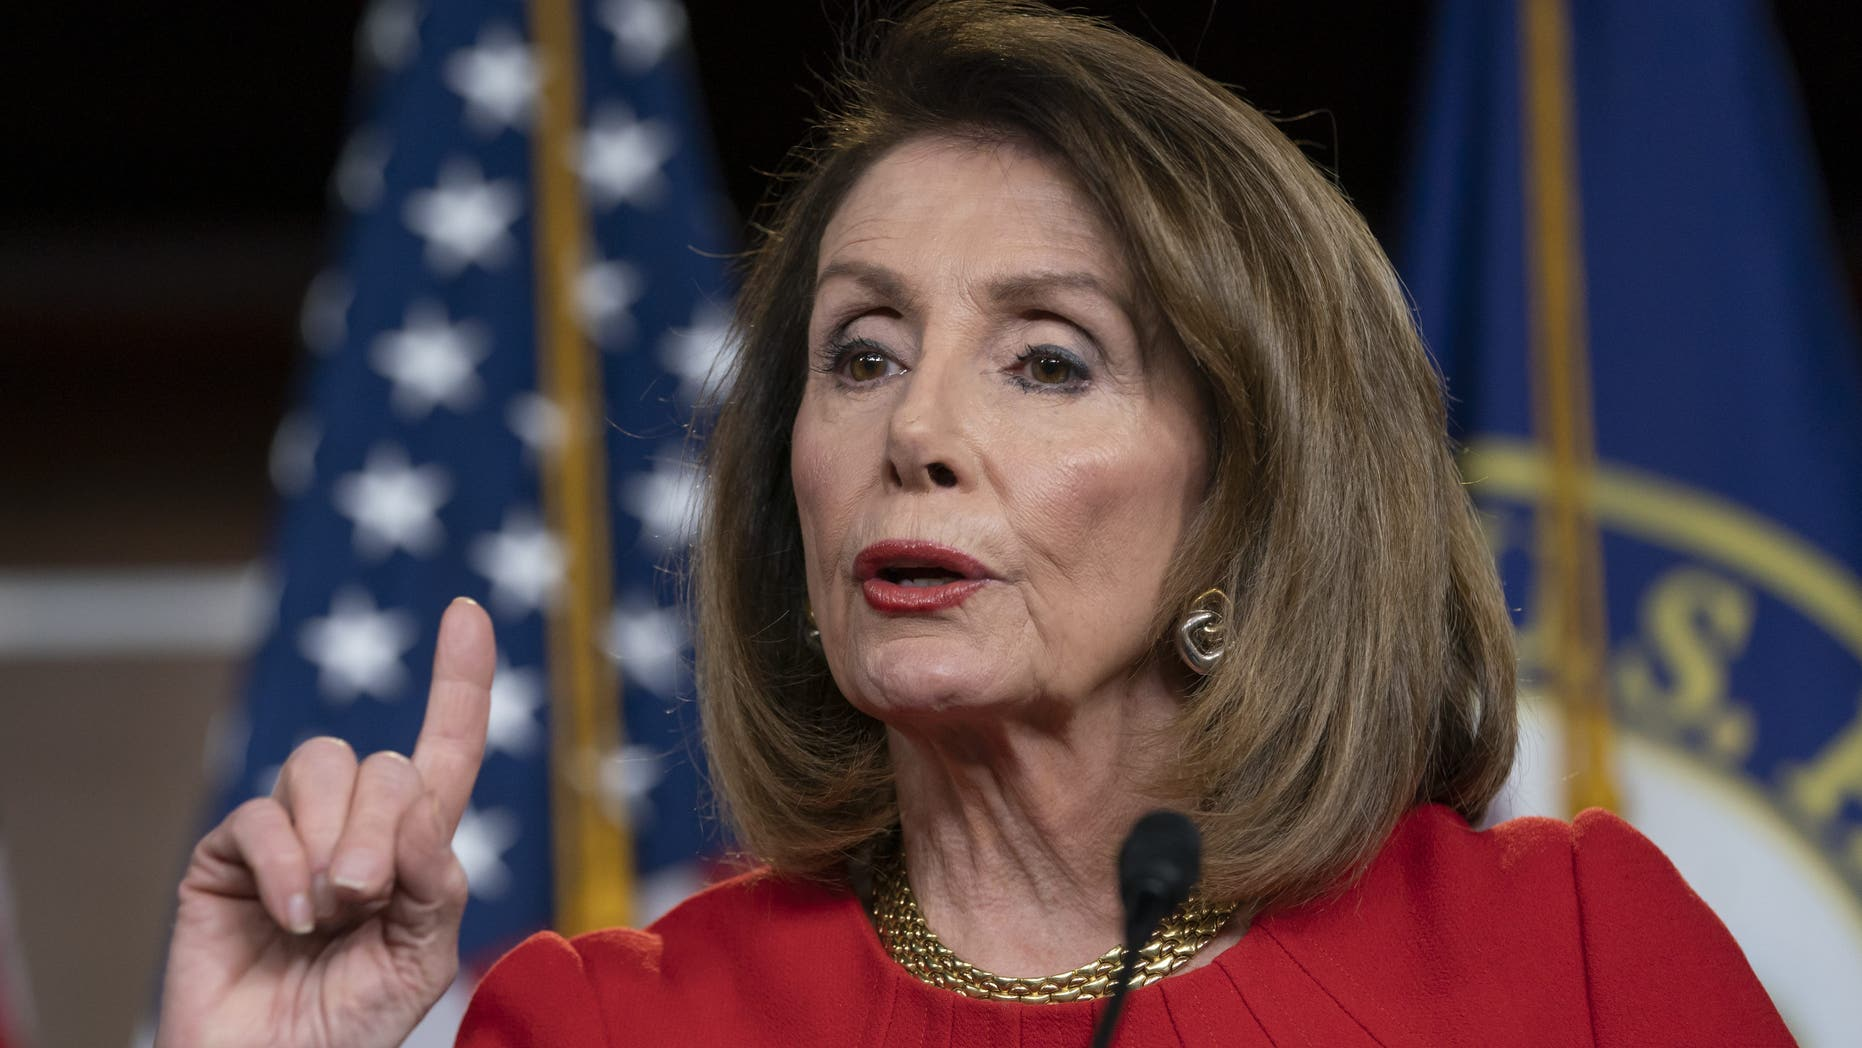 In this April 4, 2019 file photo, Speaker of the House Nancy Pelosi, D-Calif., speaks during a news conference on Capitol Hill in Washington. Pelosi and Senate Minority Leader Chuck Schumer are to meet with Trump at the White House on Tuesday. (AP Photo/J. Scott Applewhite)